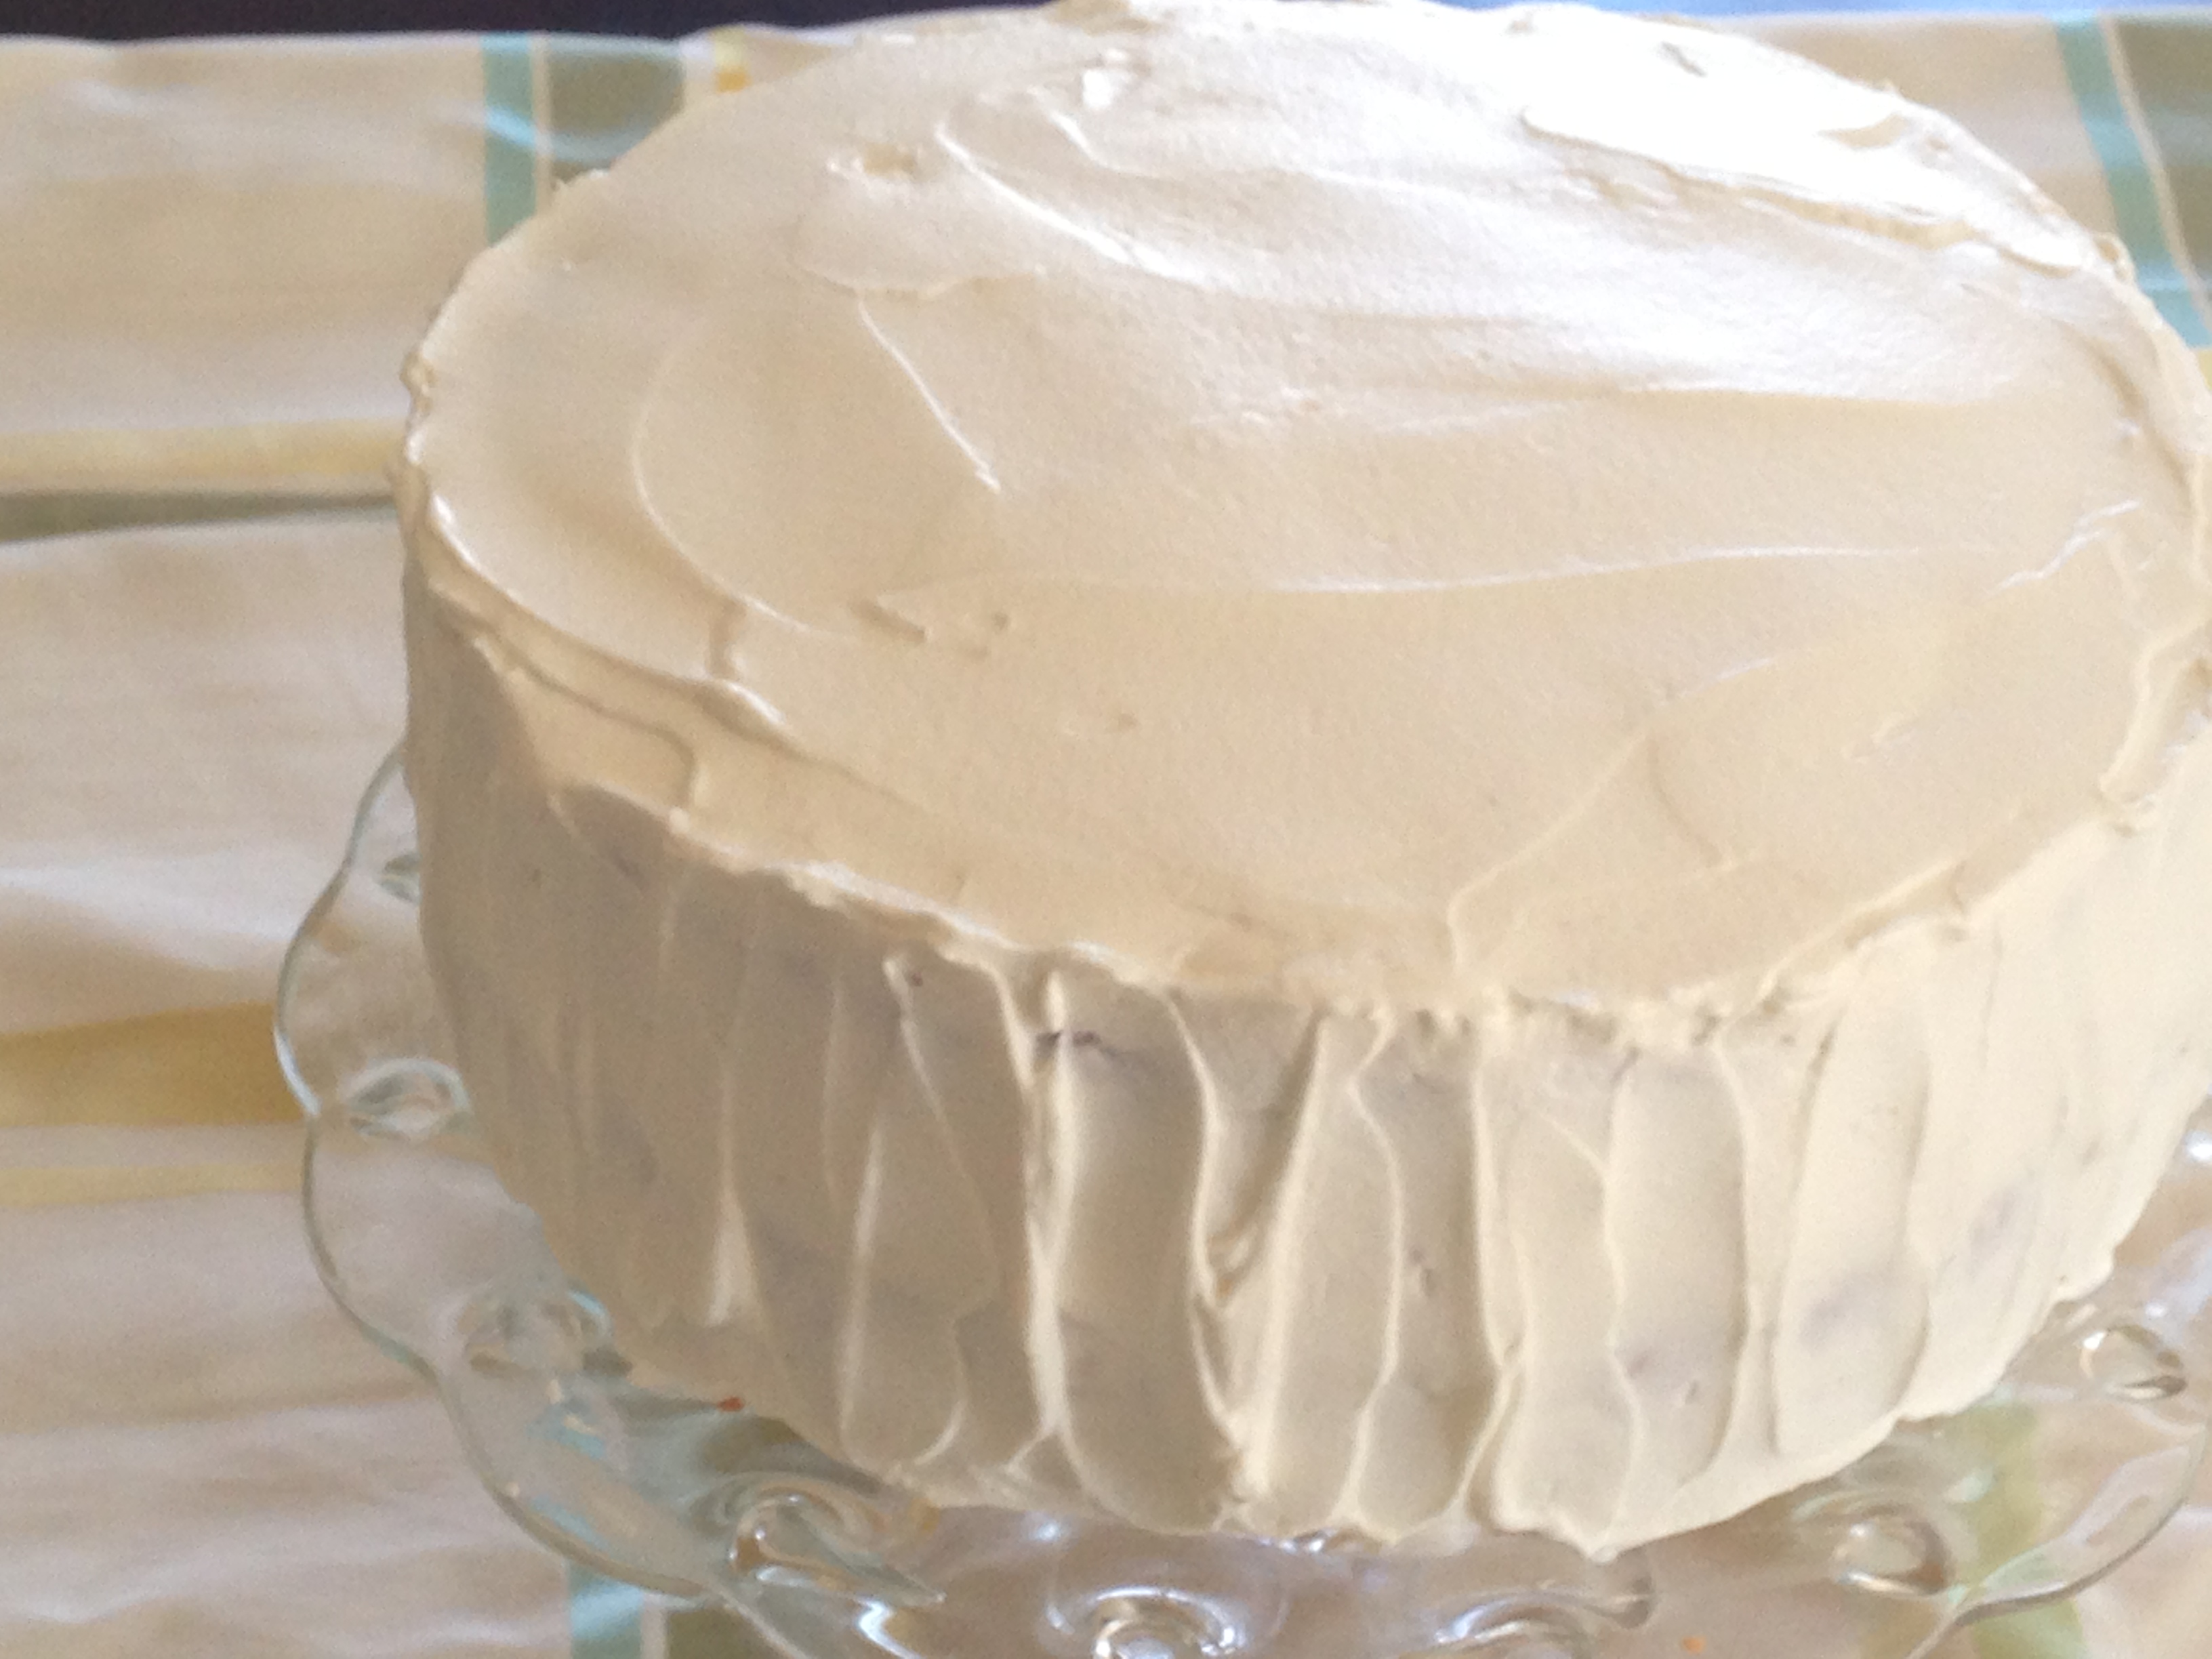 ... Lemon-Lime Curd Filling And Whipped Cream Frosting Recipe — Dishmaps